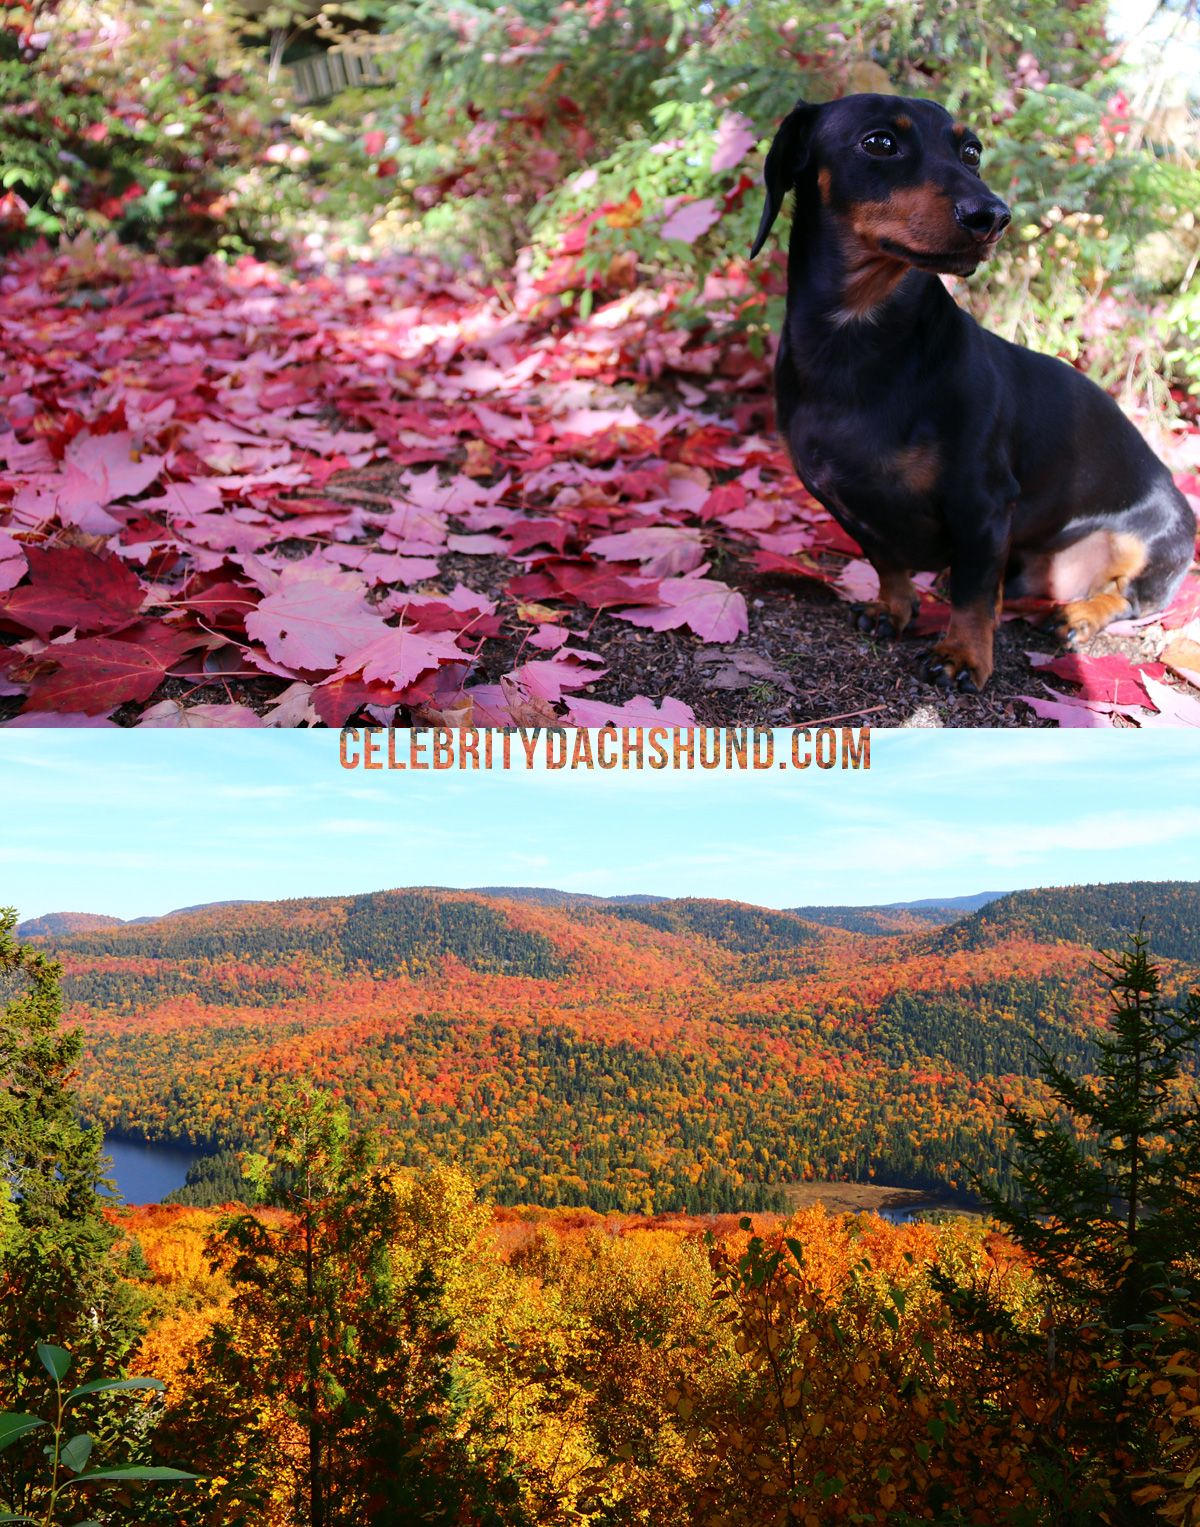 Couple shots from this past weekend - the beautiful colors of Fall!